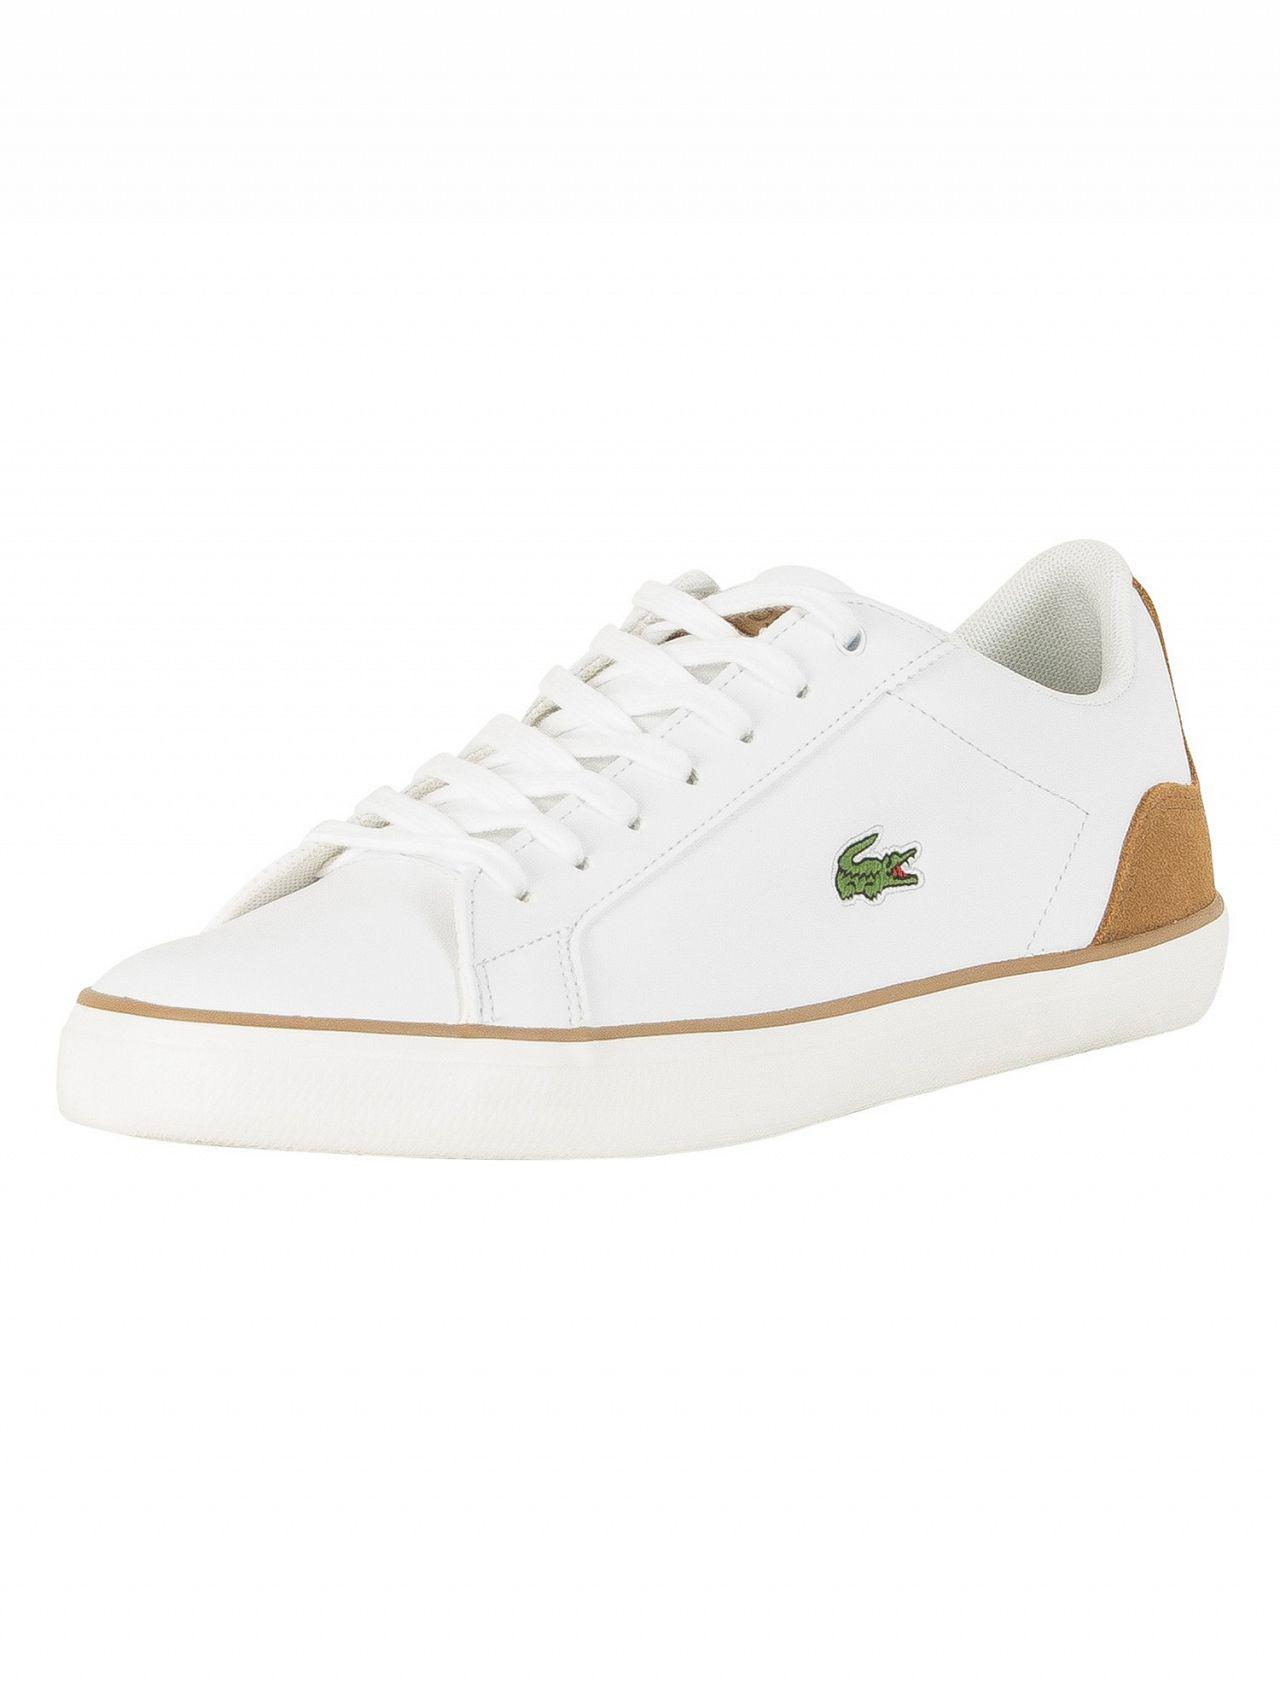 8801dbd82 Lacoste White light Brown Lerond 118 1 Cam Leather Trainers in White ...